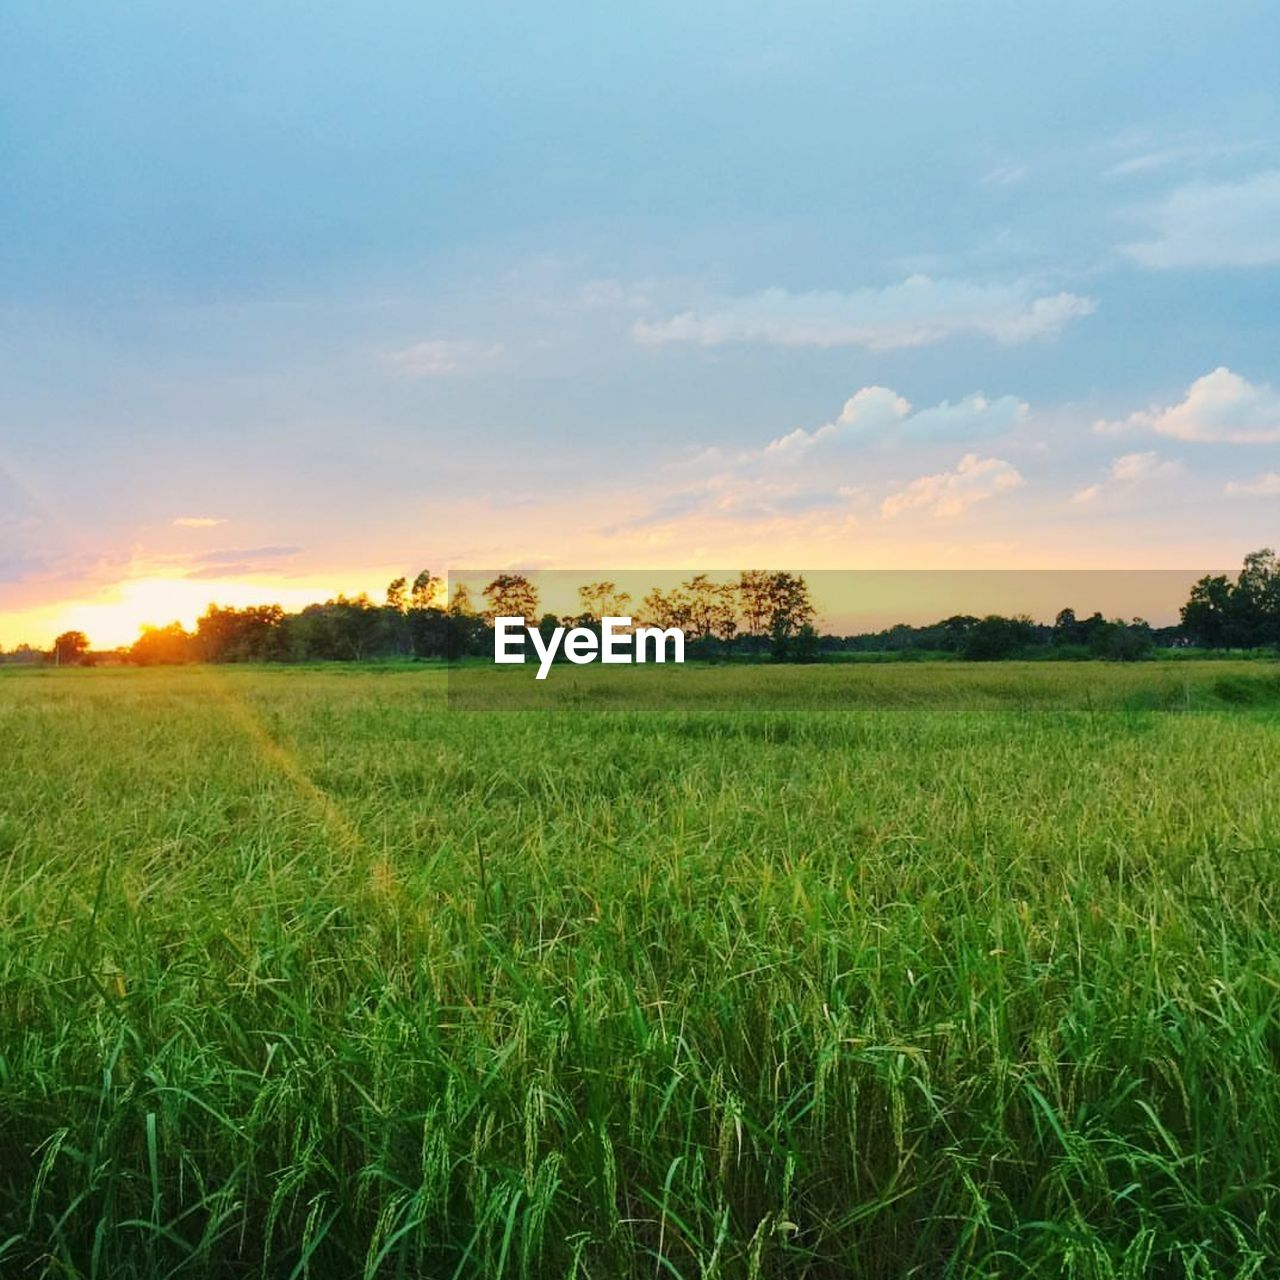 field, agriculture, nature, landscape, tranquility, beauty in nature, tranquil scene, sunset, farm, scenics, sky, growth, rural scene, crop, no people, grass, outdoors, green color, cloud - sky, cereal plant, tree, day, rice paddy, wheat